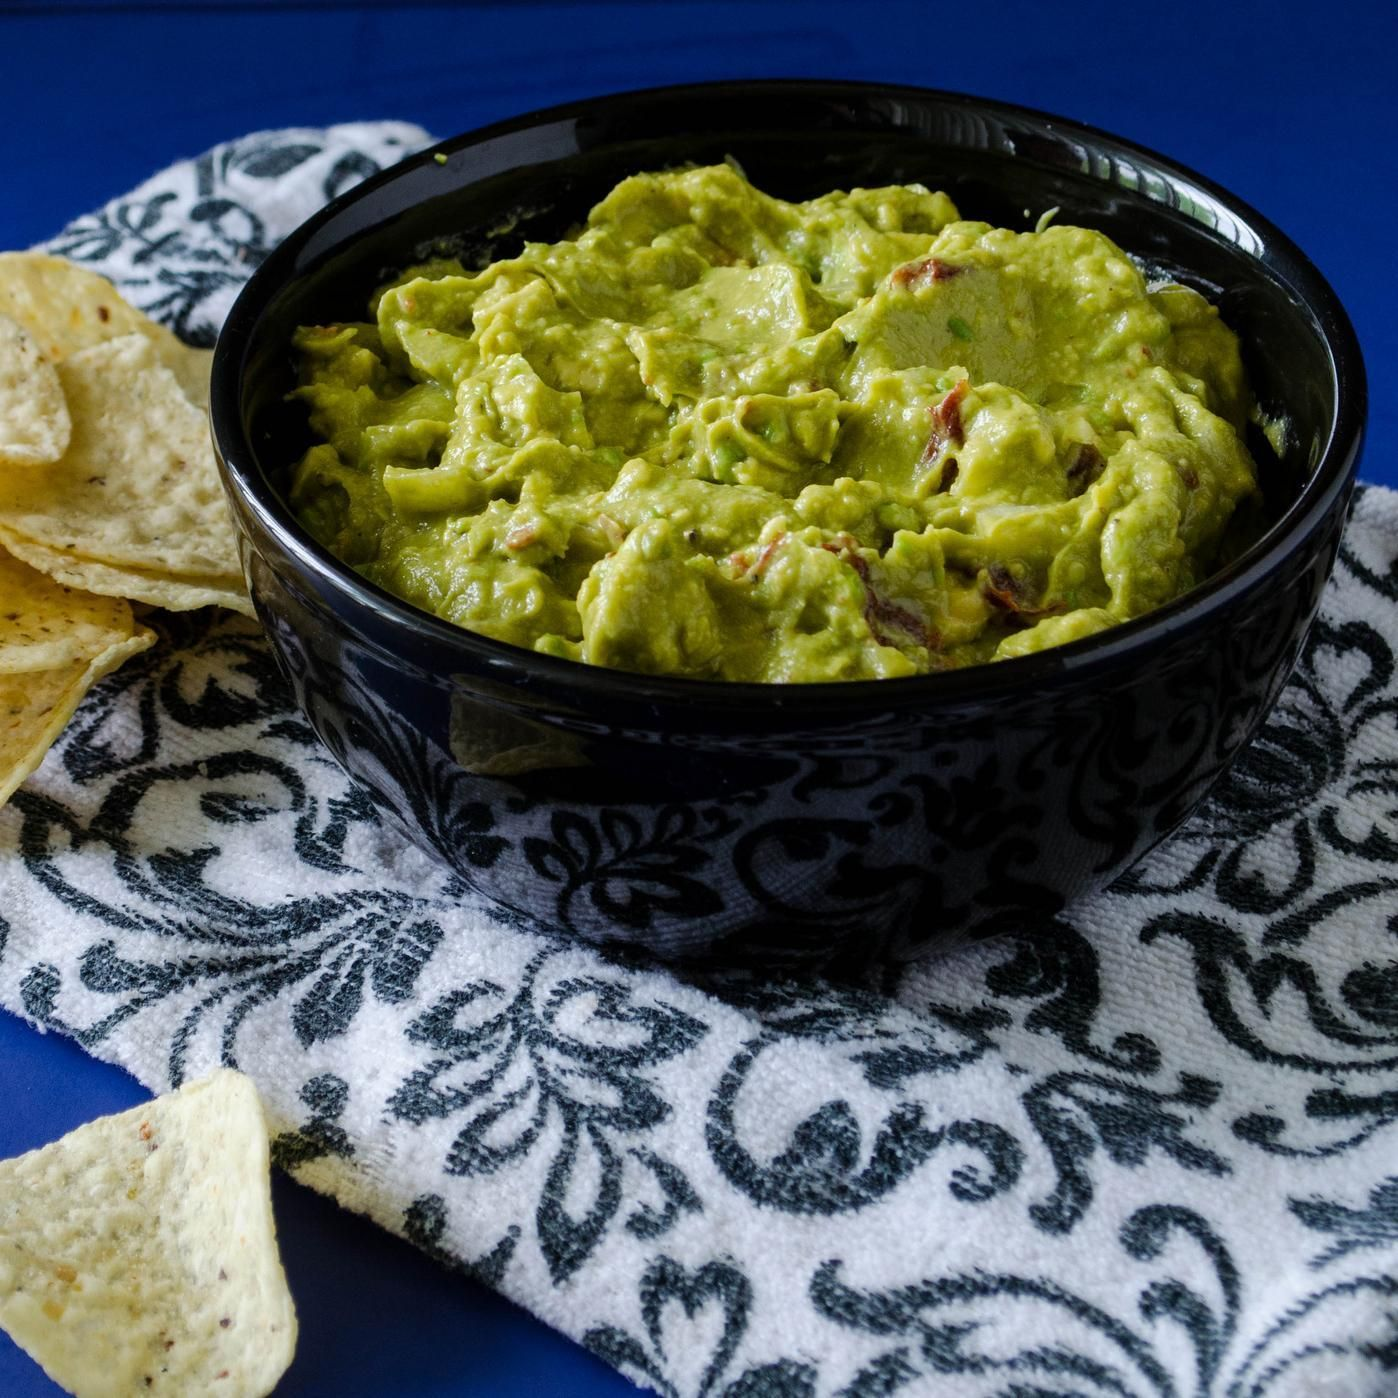 Chipotle Has Finally Unveiled Its Guacamole Recipe